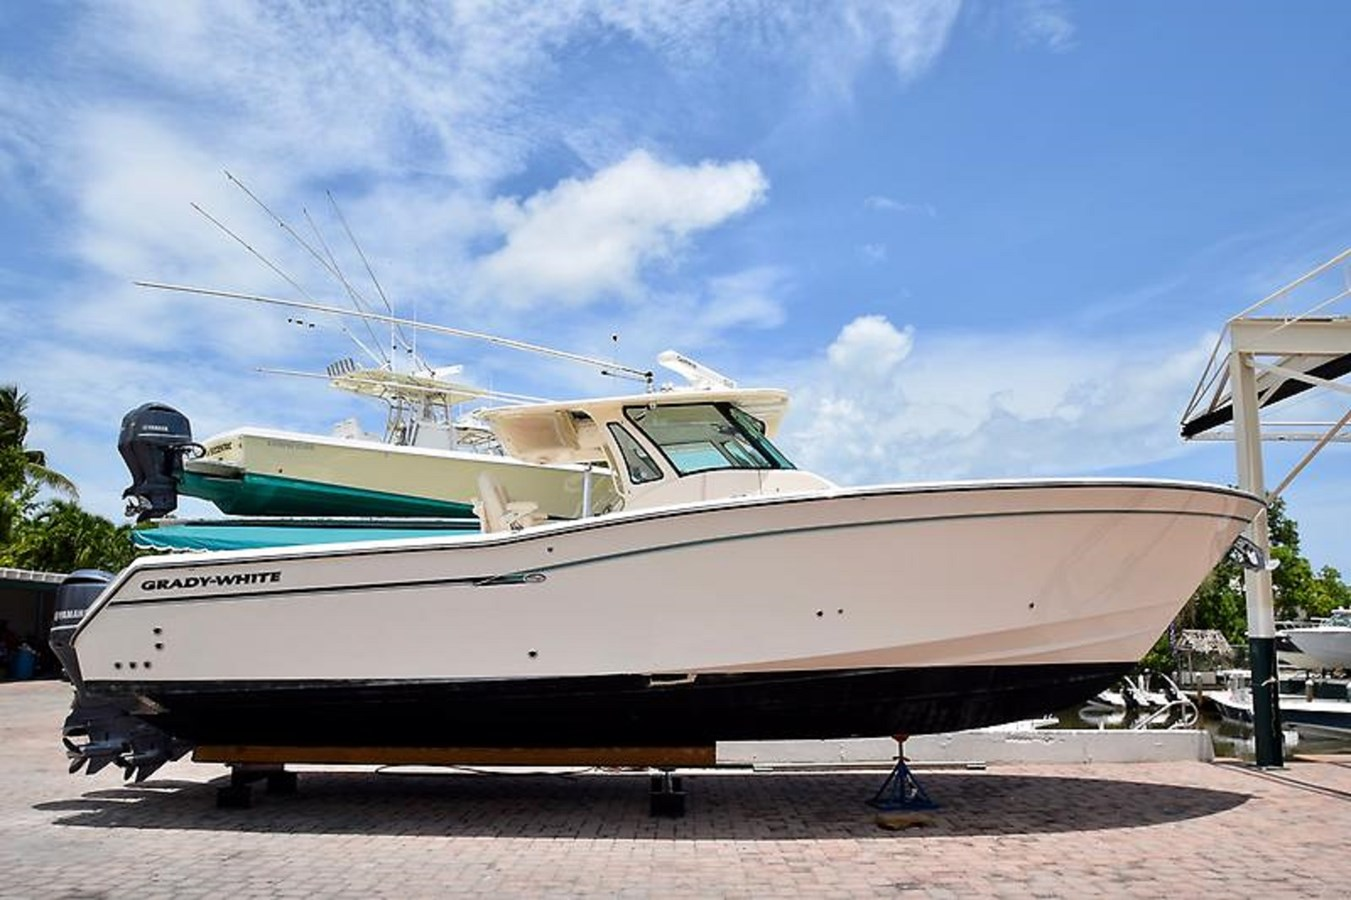 grady white 376 canyon 2015 for sale in key largo florida series and parallel circuits diagrams 2015 grady white 376 canyon